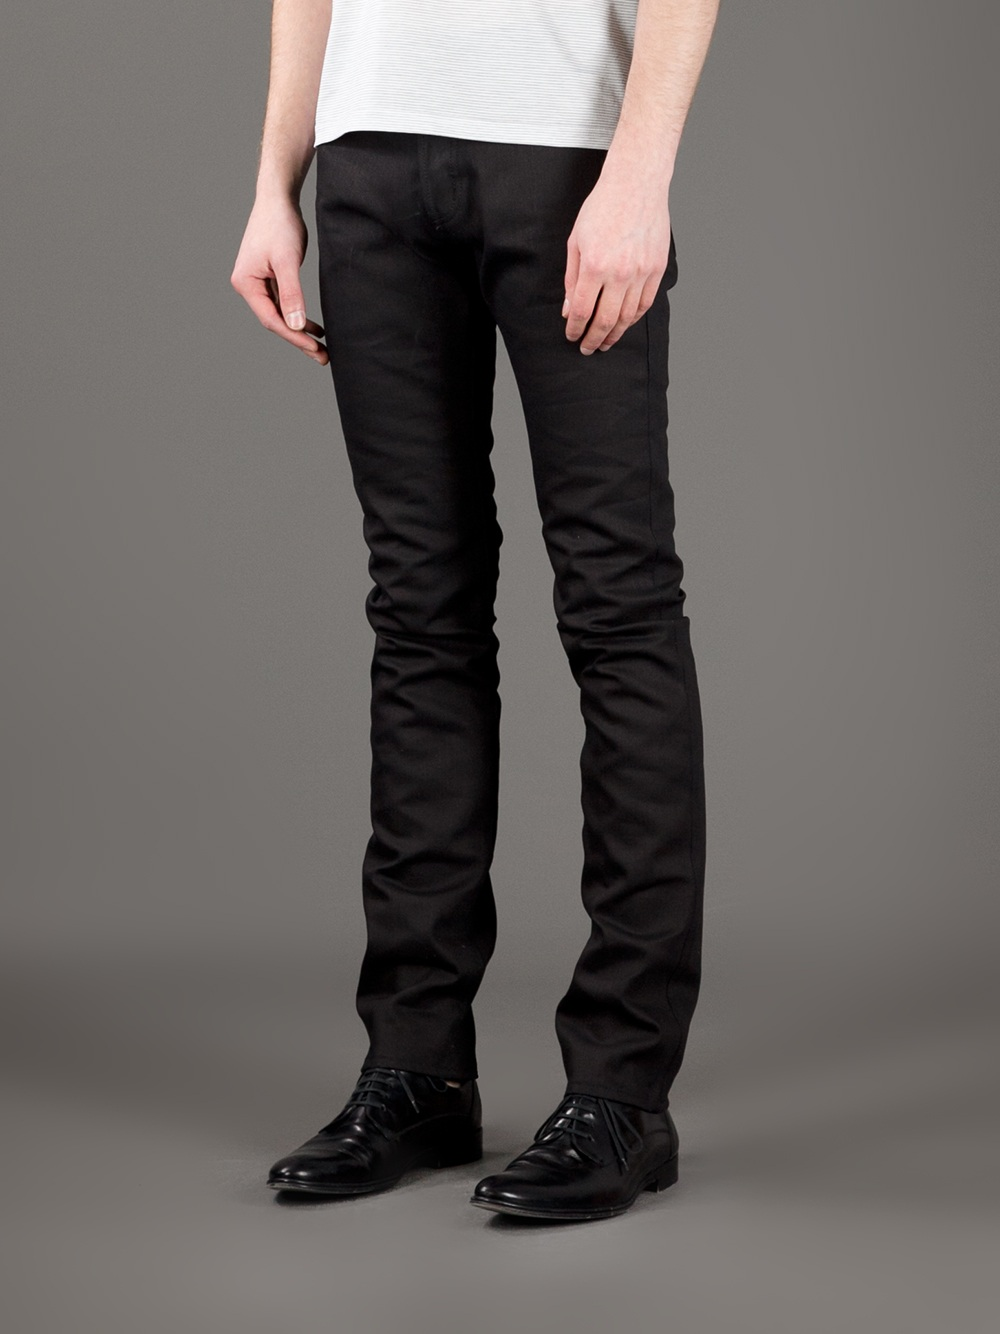 lyst saint laurent coated slim fit jeans in black for men. Black Bedroom Furniture Sets. Home Design Ideas